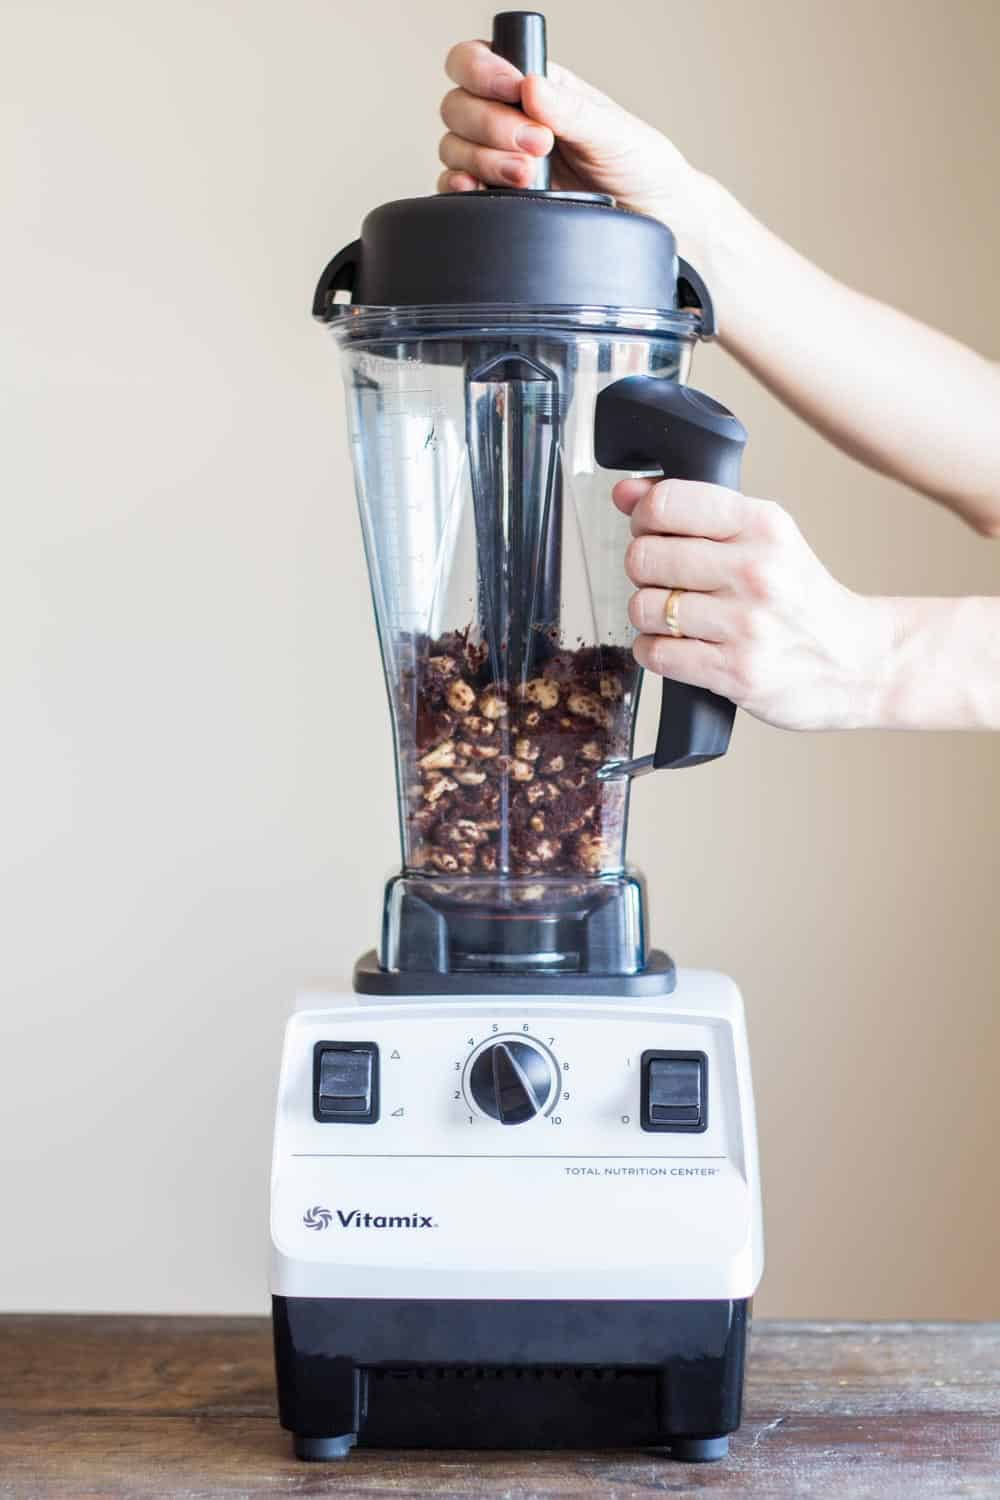 ingredients for chocolate spread inside Vitamix blender.